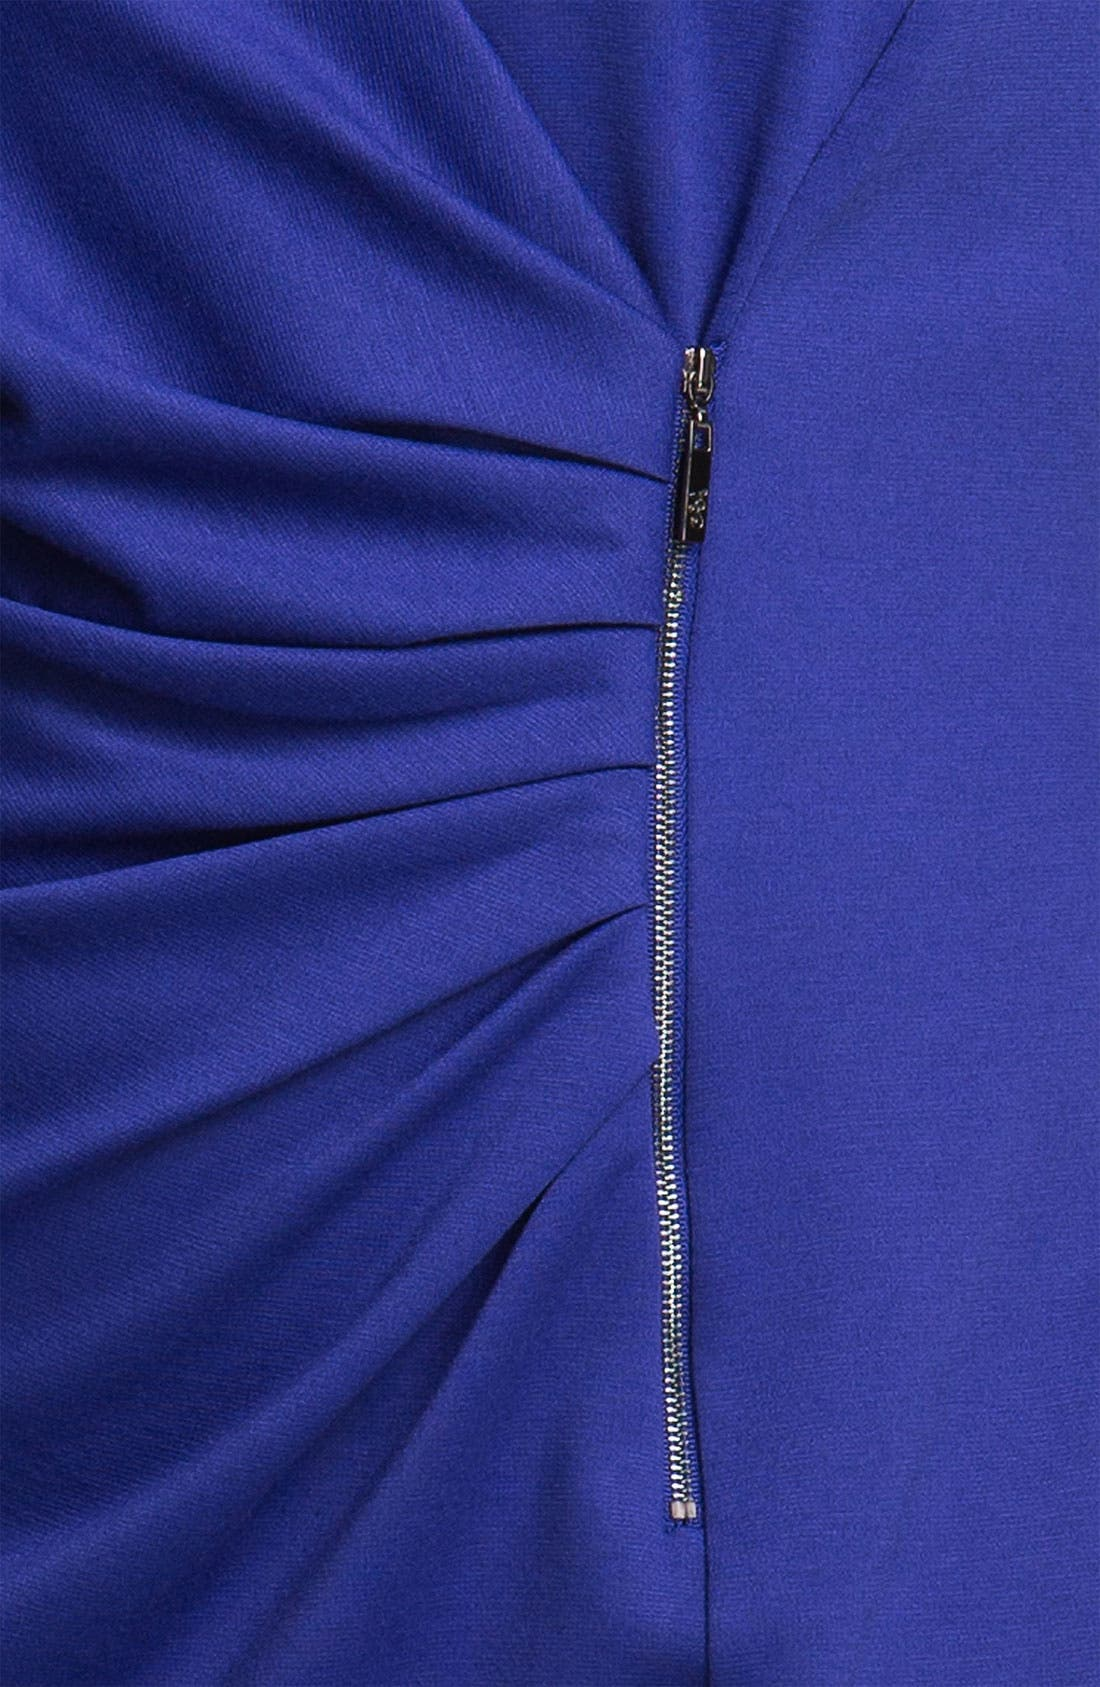 Alternate Image 3  - Jessica Simpson Zipper Detail Ponte Knit Sheath Dress (Plus)